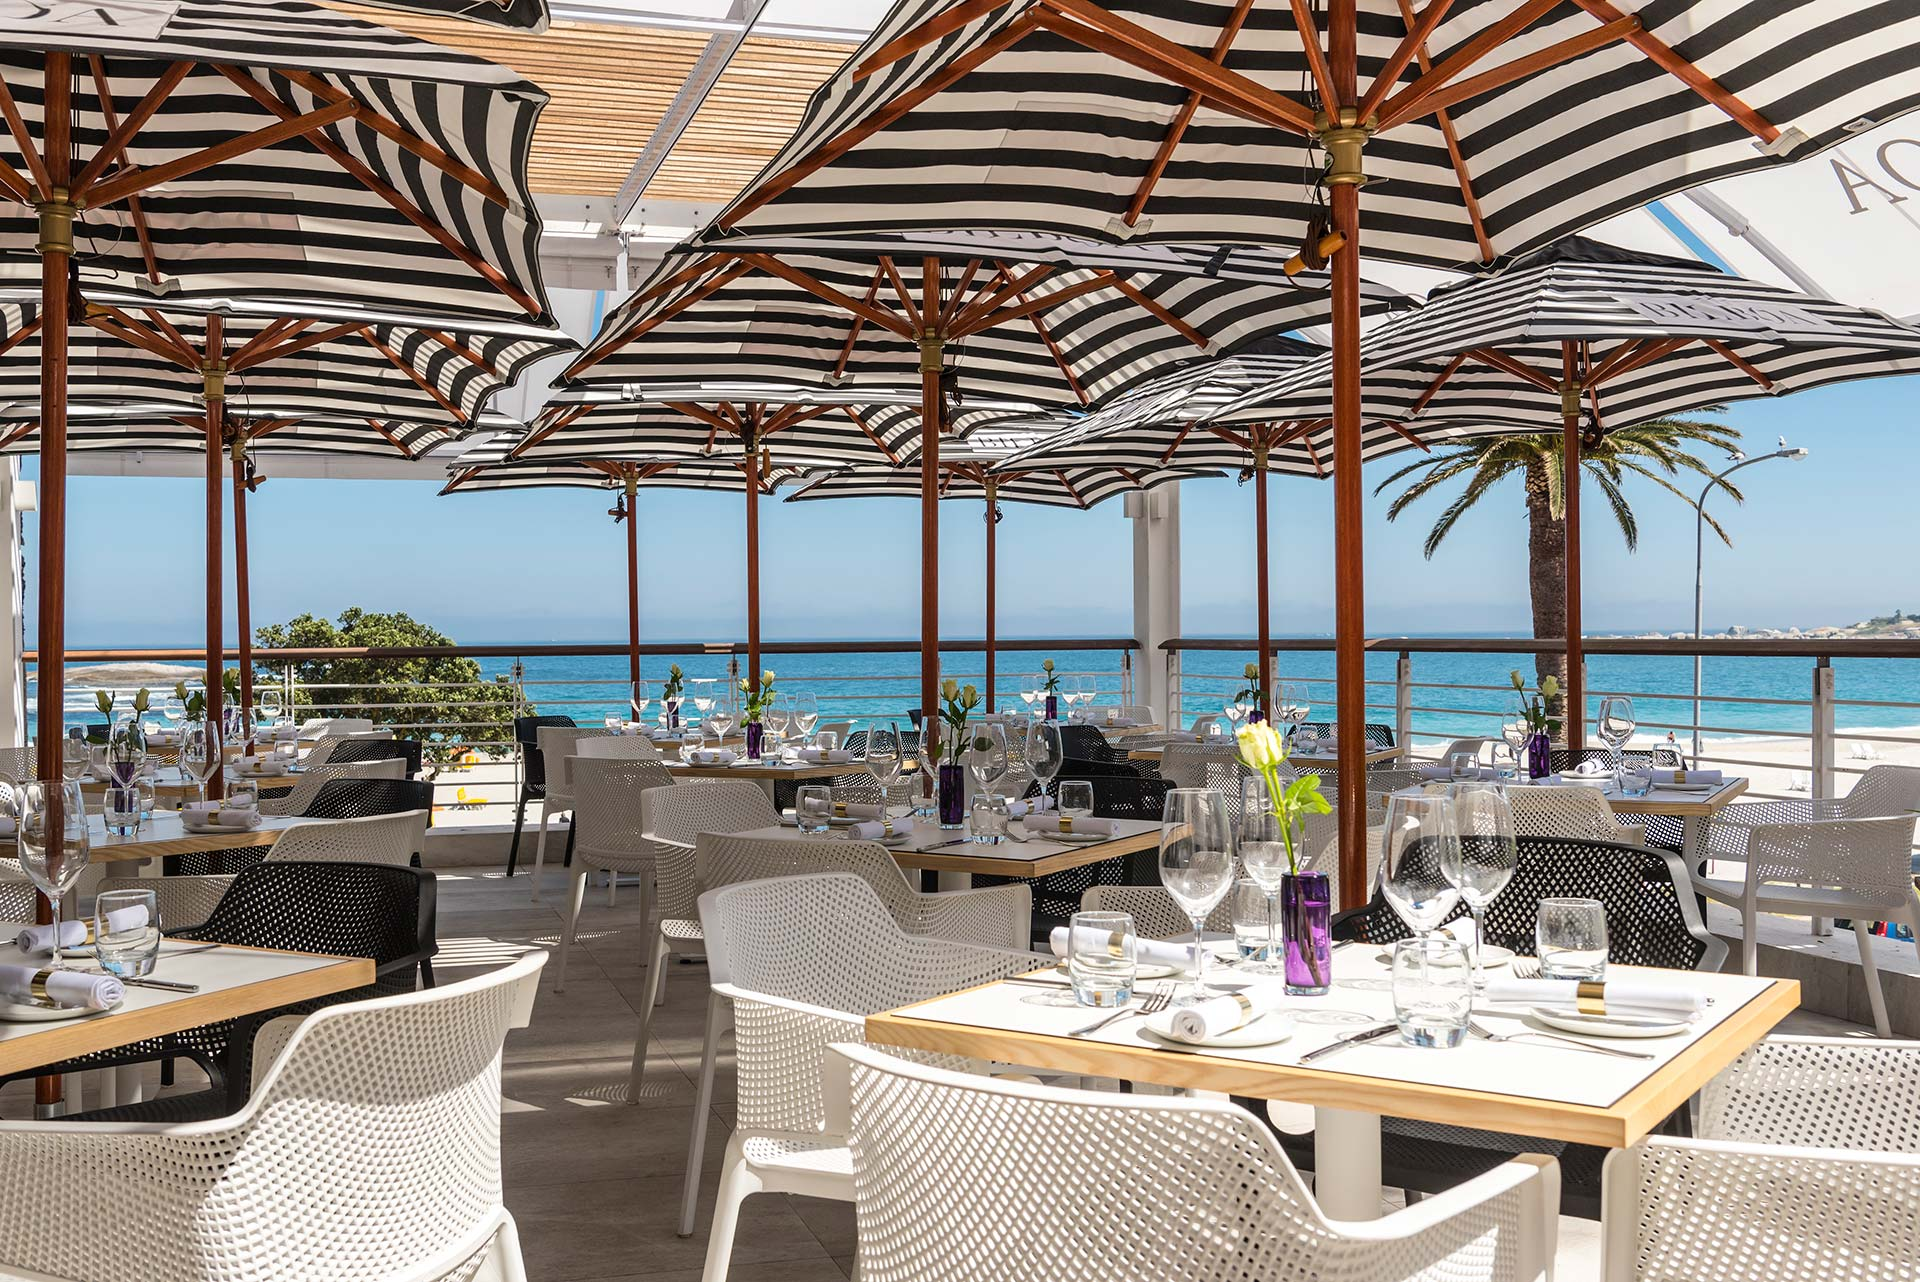 Dinner with a view: Bilboa Camps Bay - For delectable seafood, uninterrupted ocean views, and very friendly service. This is a seafood lovers dream and no trip to Cape Town would be complete without indulging in the local catch. View Website.